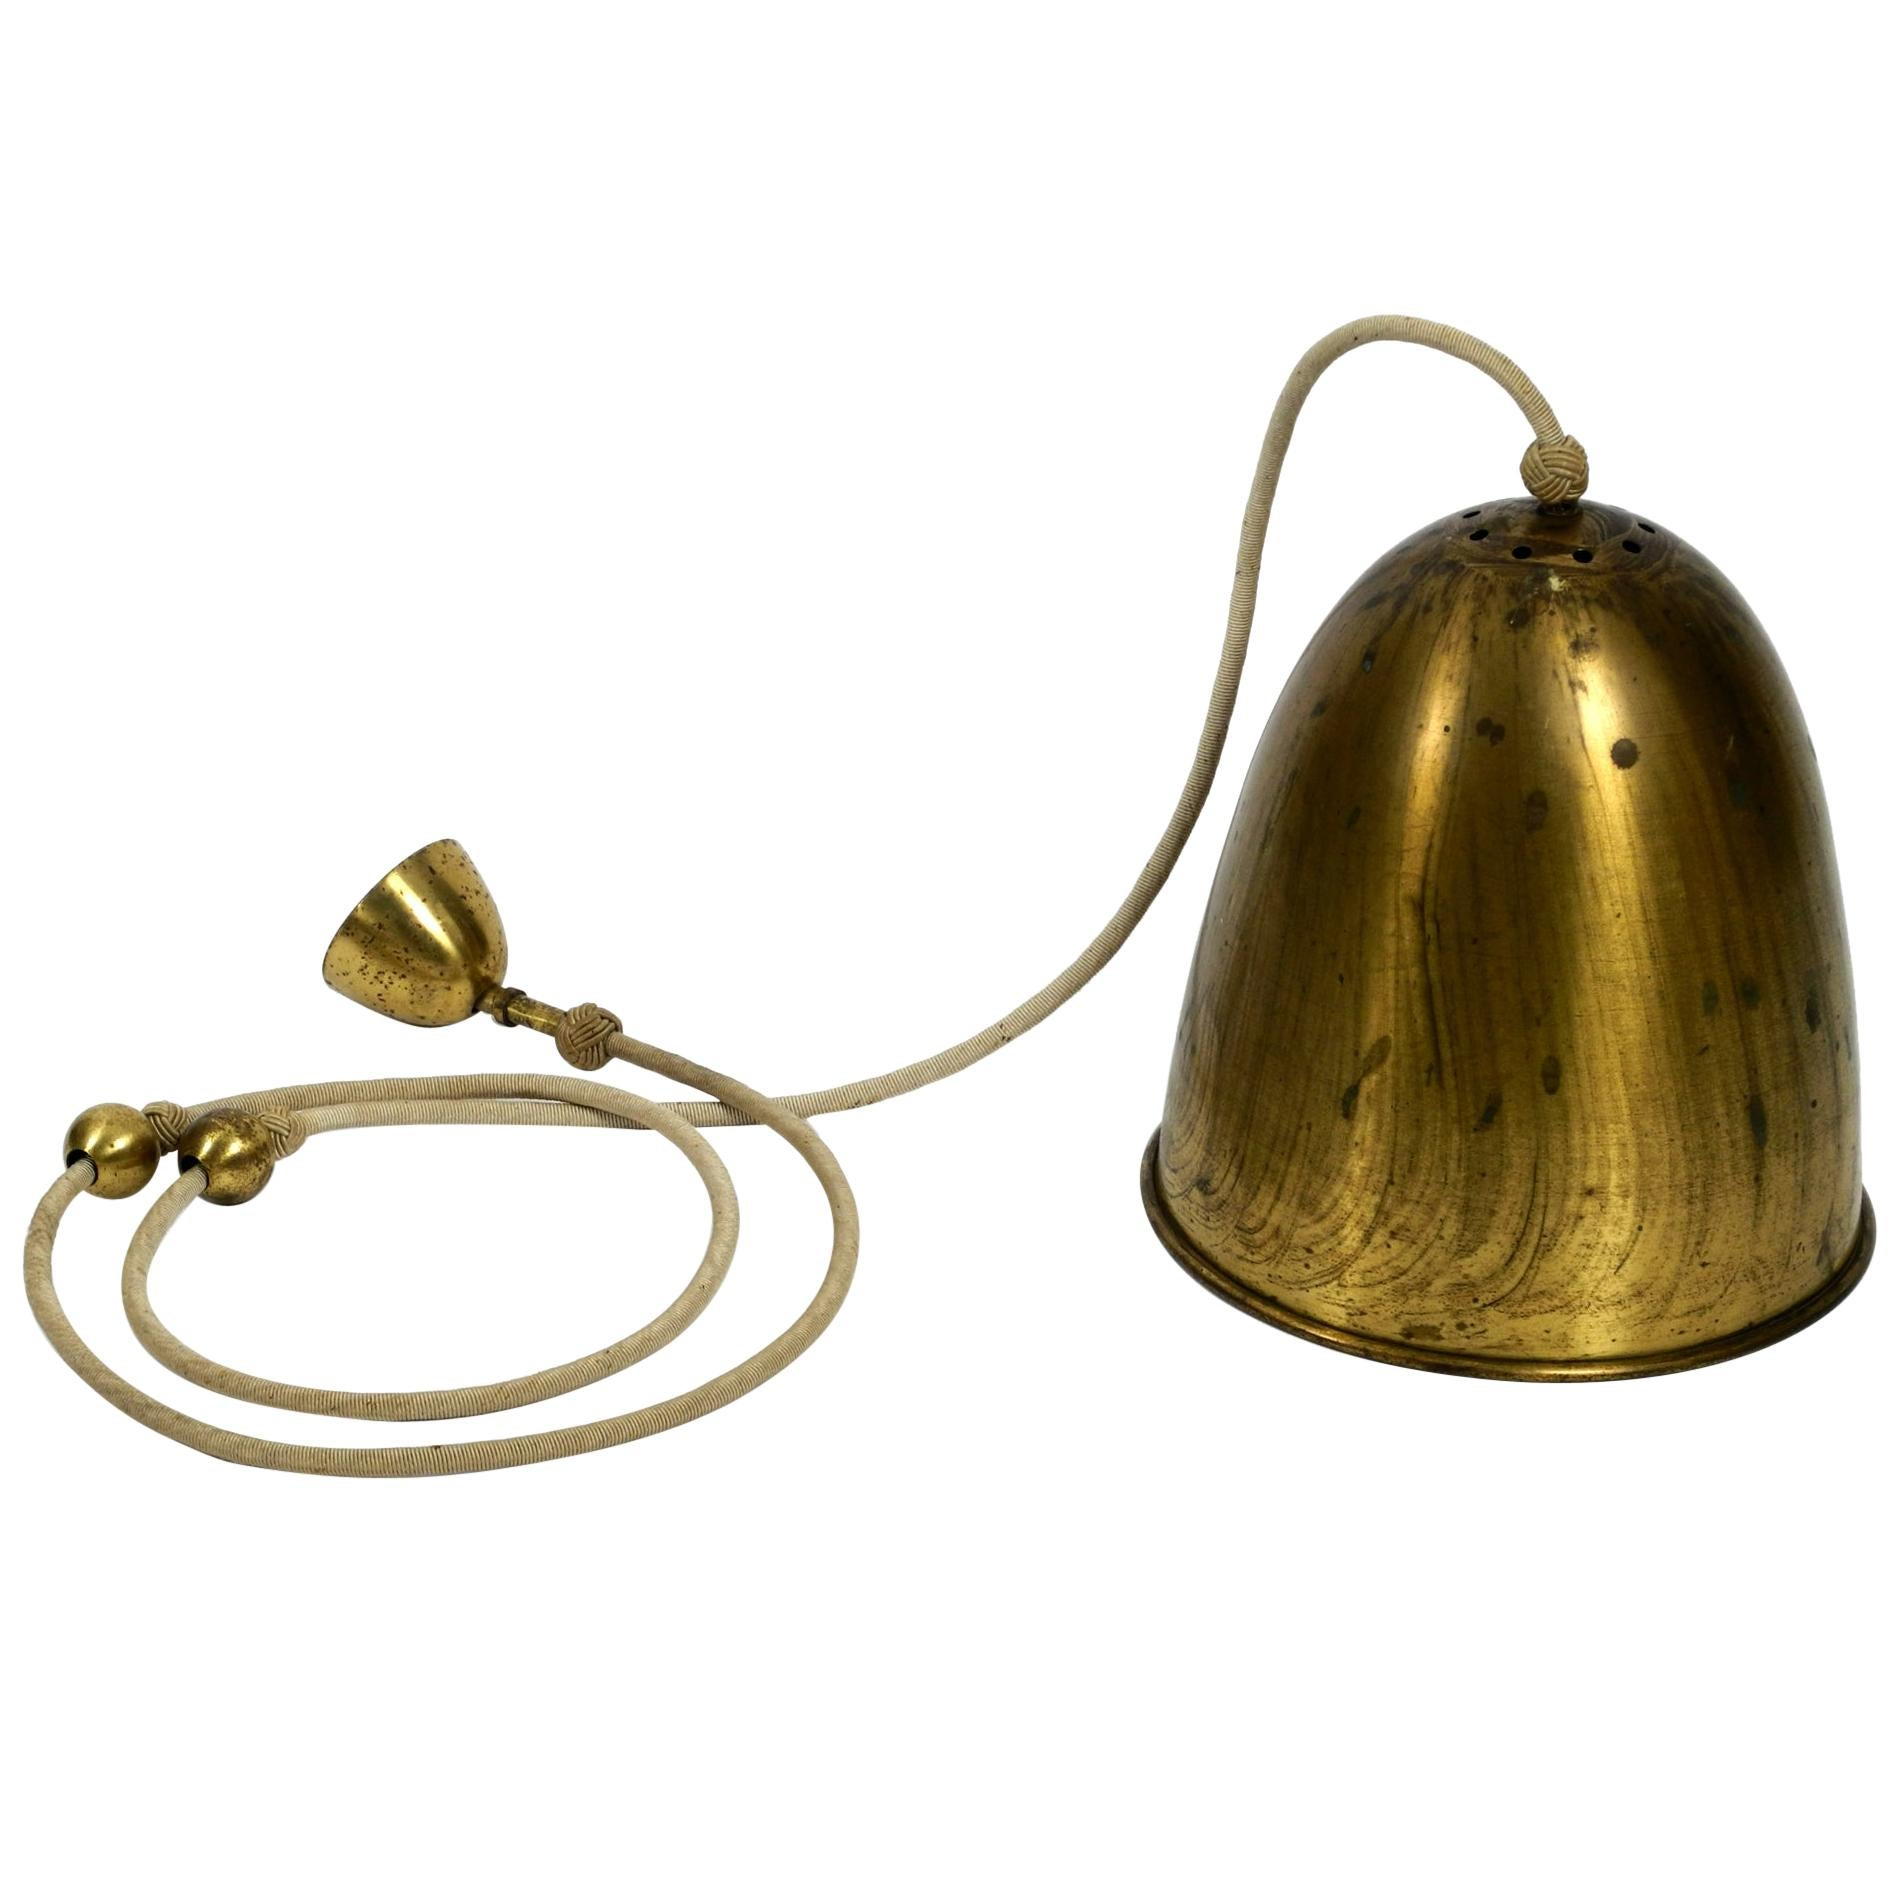 Exceptional Large Heavy Midcentury Brass Pendant Lamp with 3 Sockets